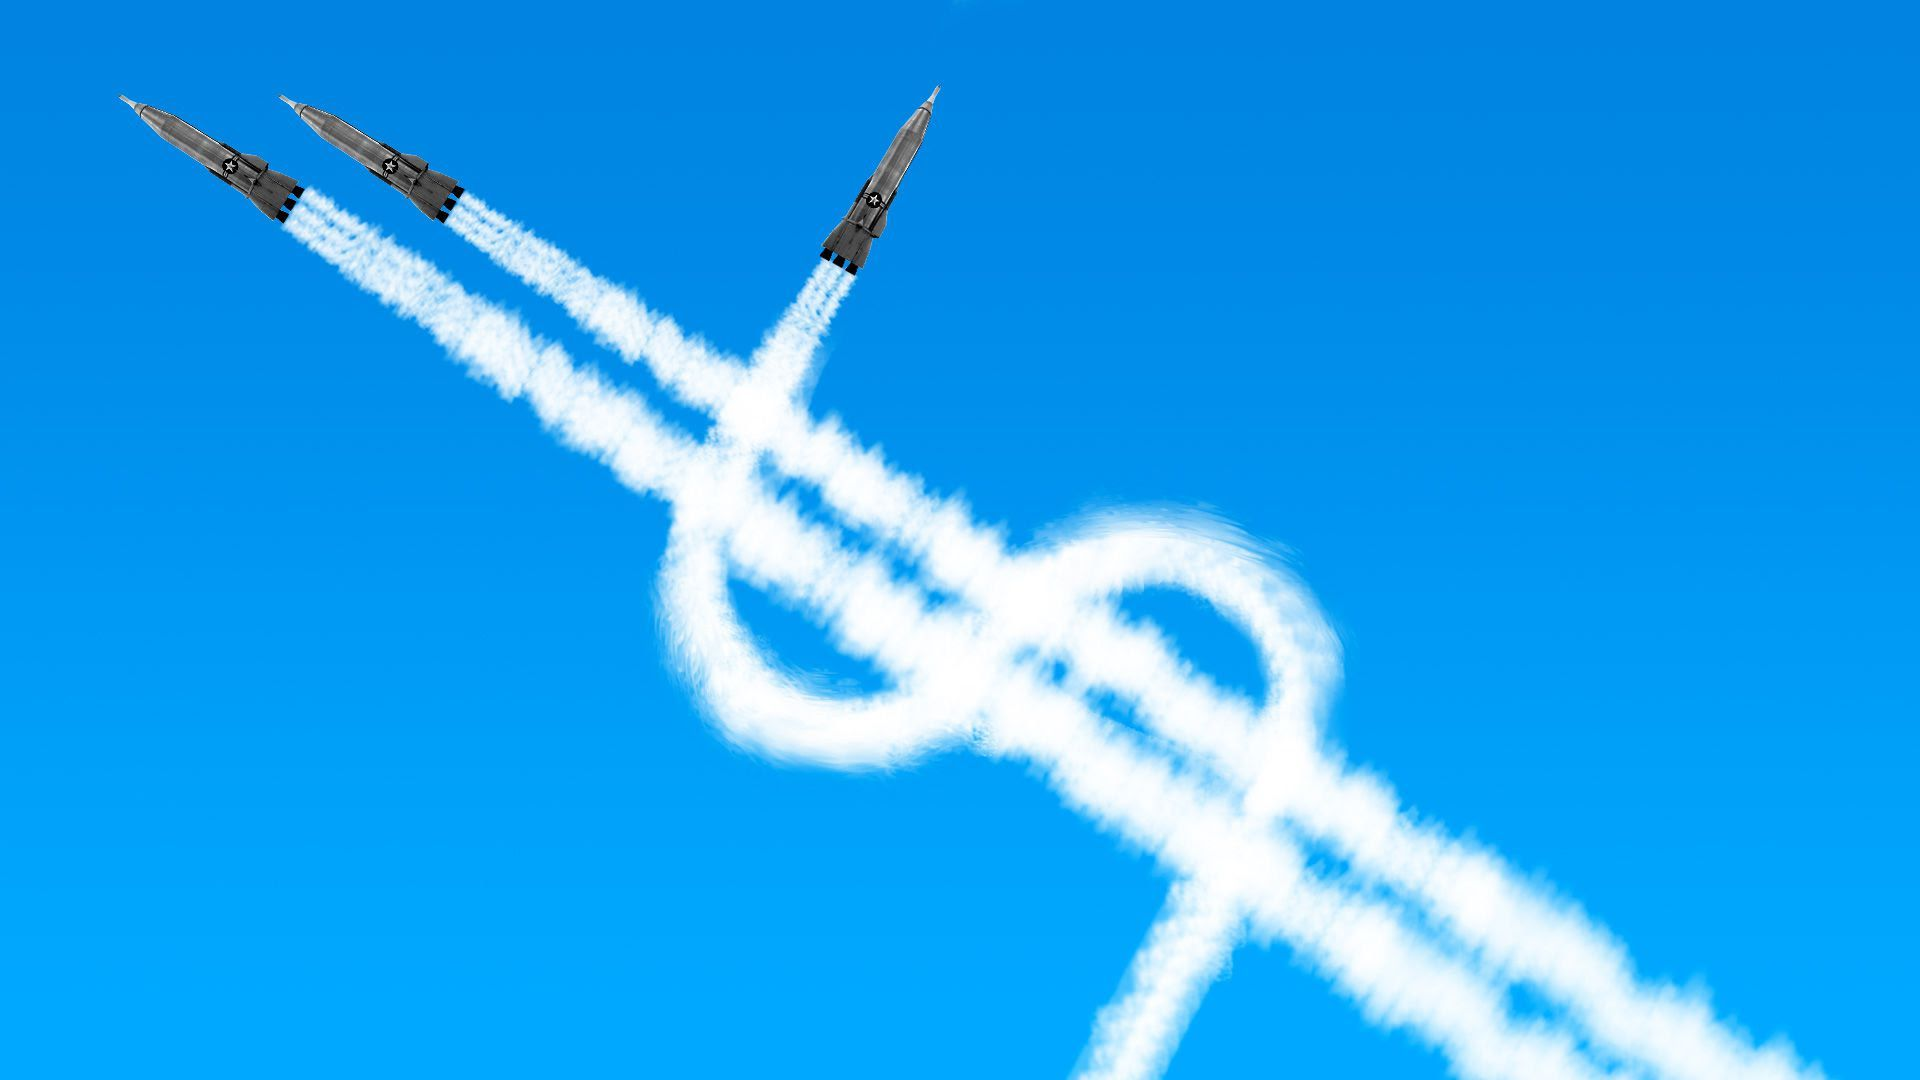 Three jets leave a trail of fumes as they fly that creates a money symbol.